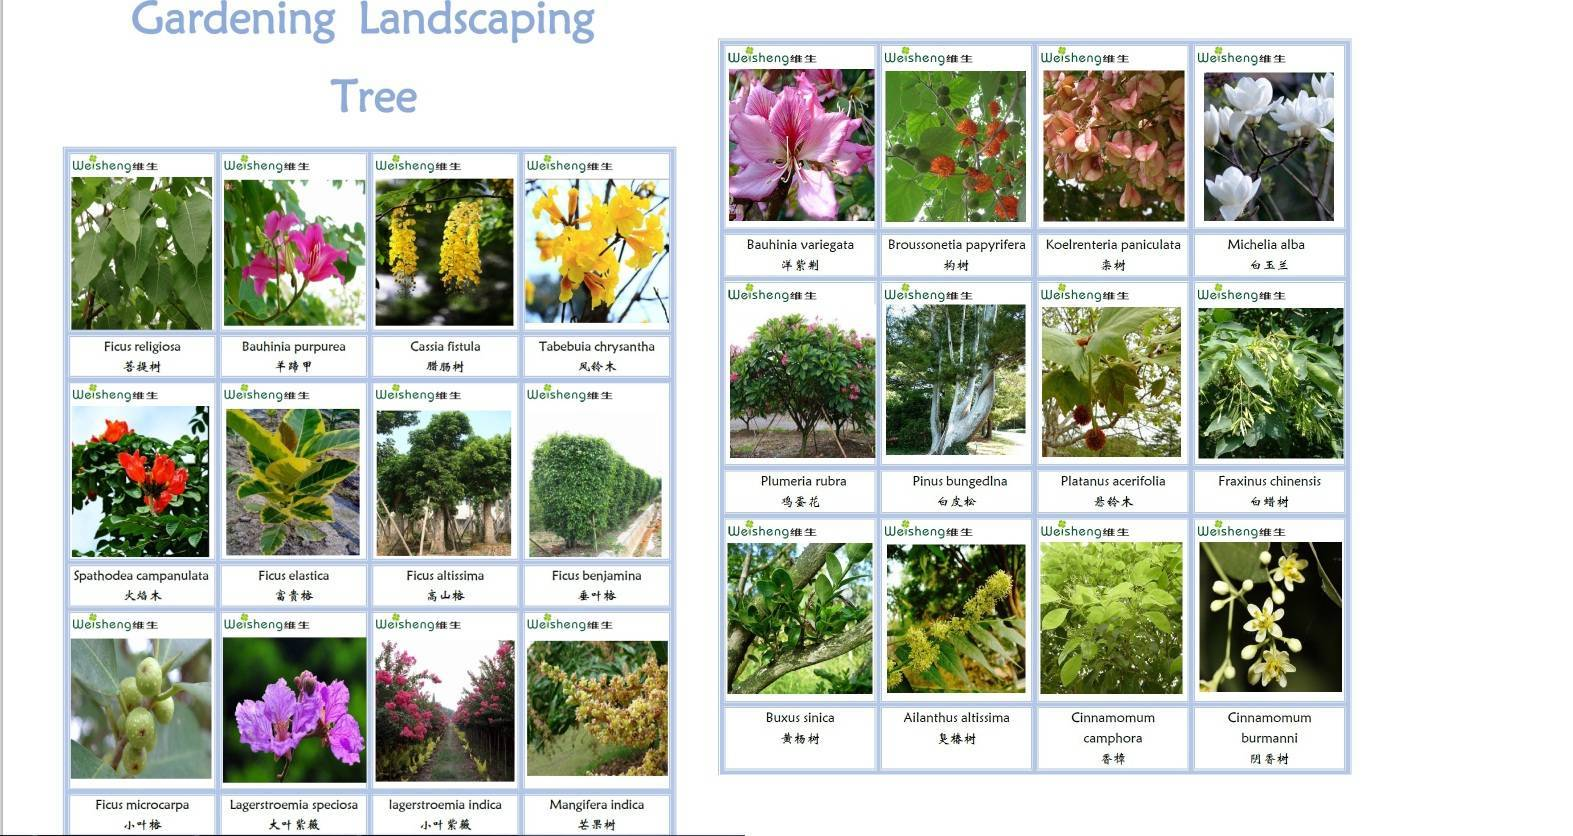 Sell all kinds of gardening landscaping tree